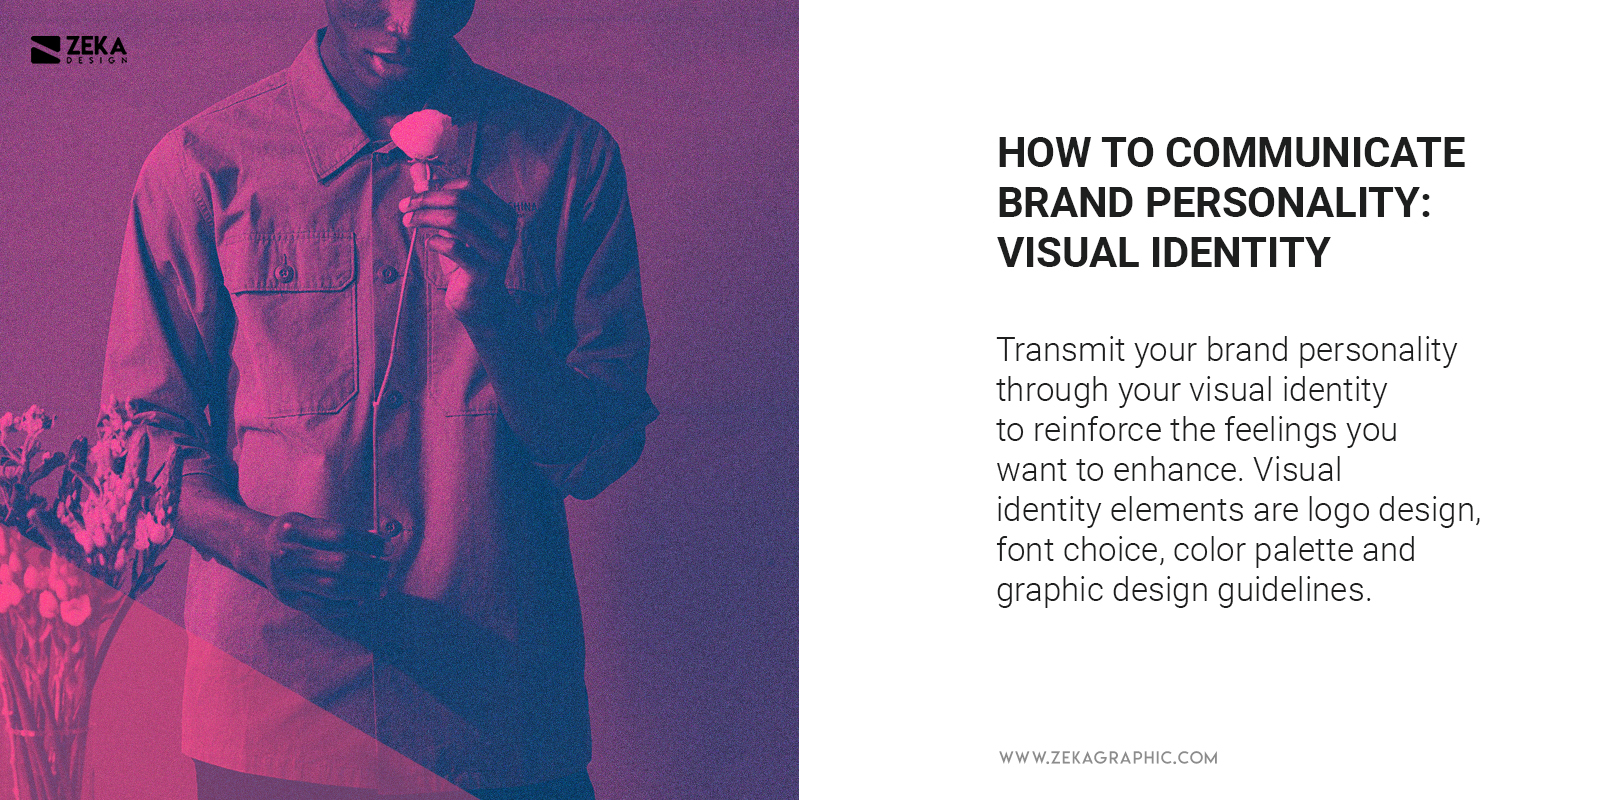 Communicate Brand Personality With Visual Identity